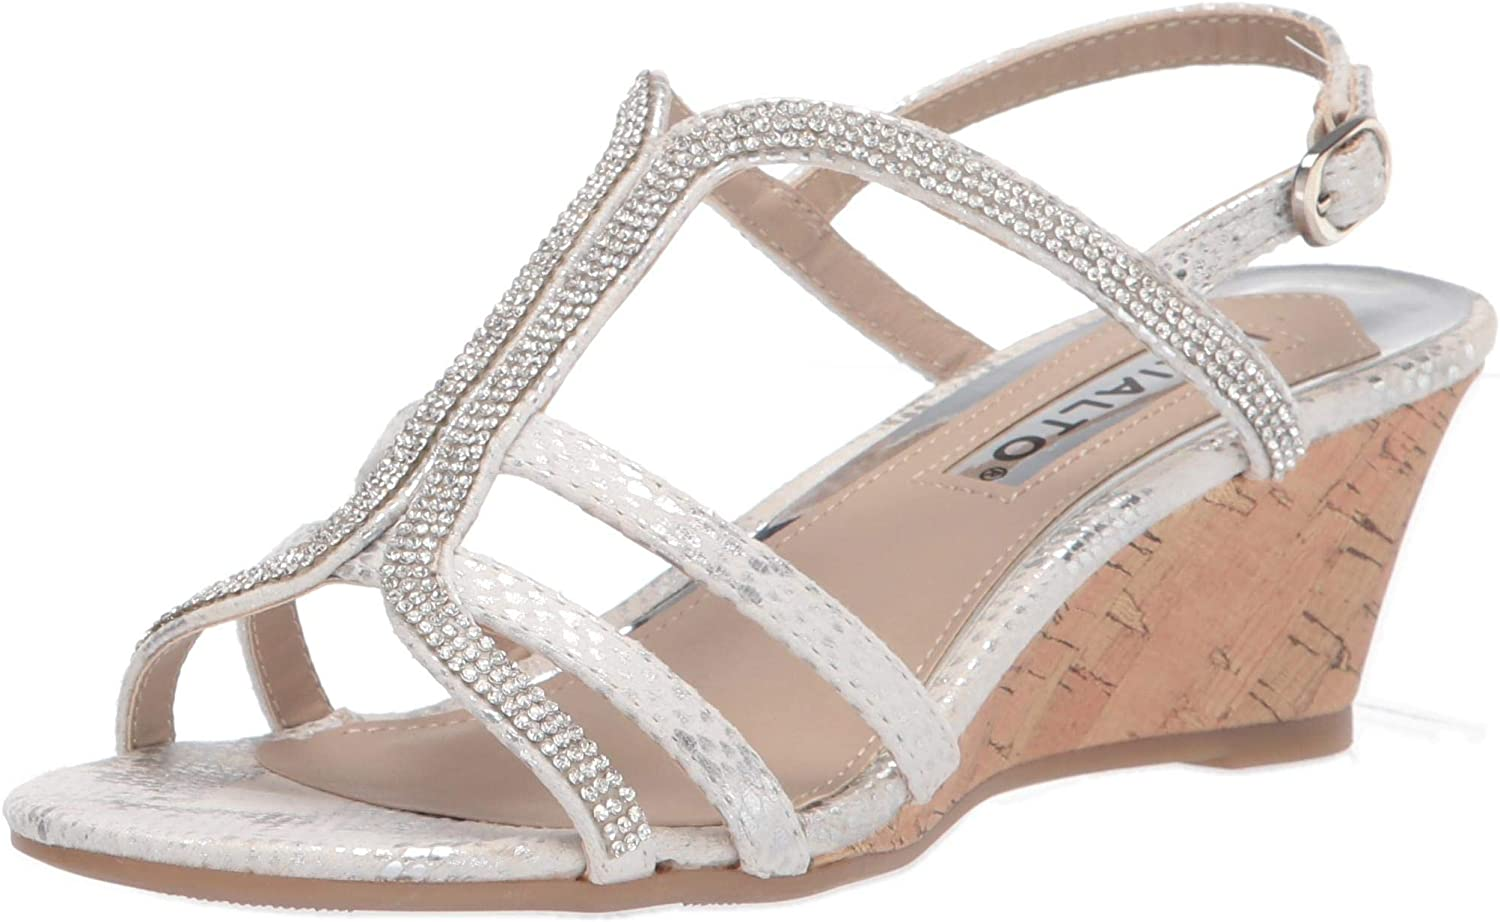 RIALTO Women's Dress Heeled Sandal Sale special price Today's only